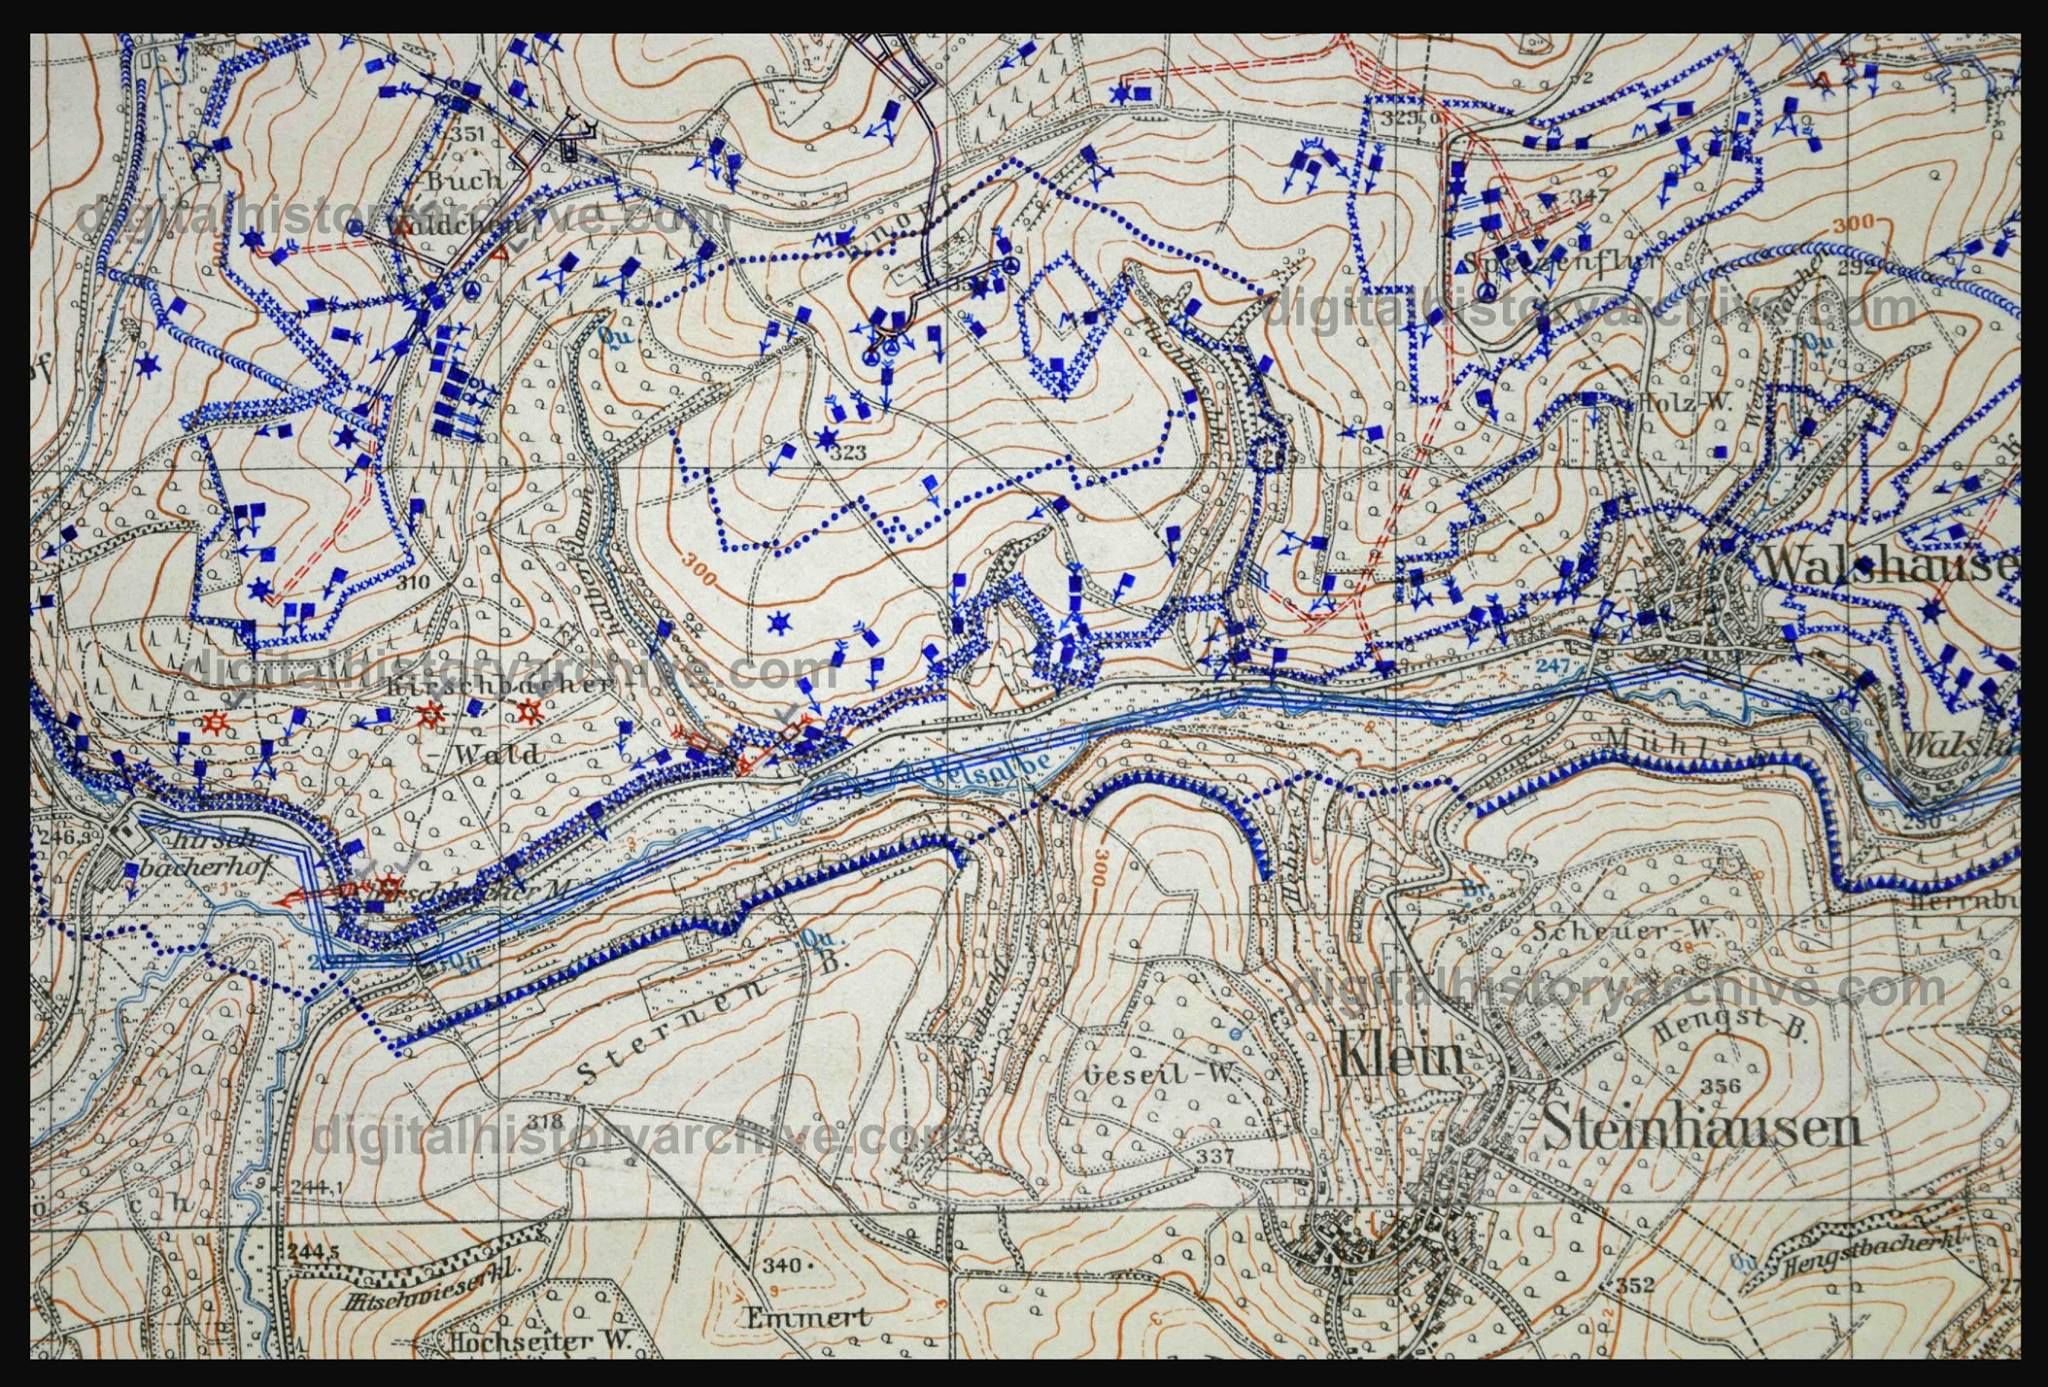 WWII, 1940 - A 1:25,000 map of a section of Westwall defenses